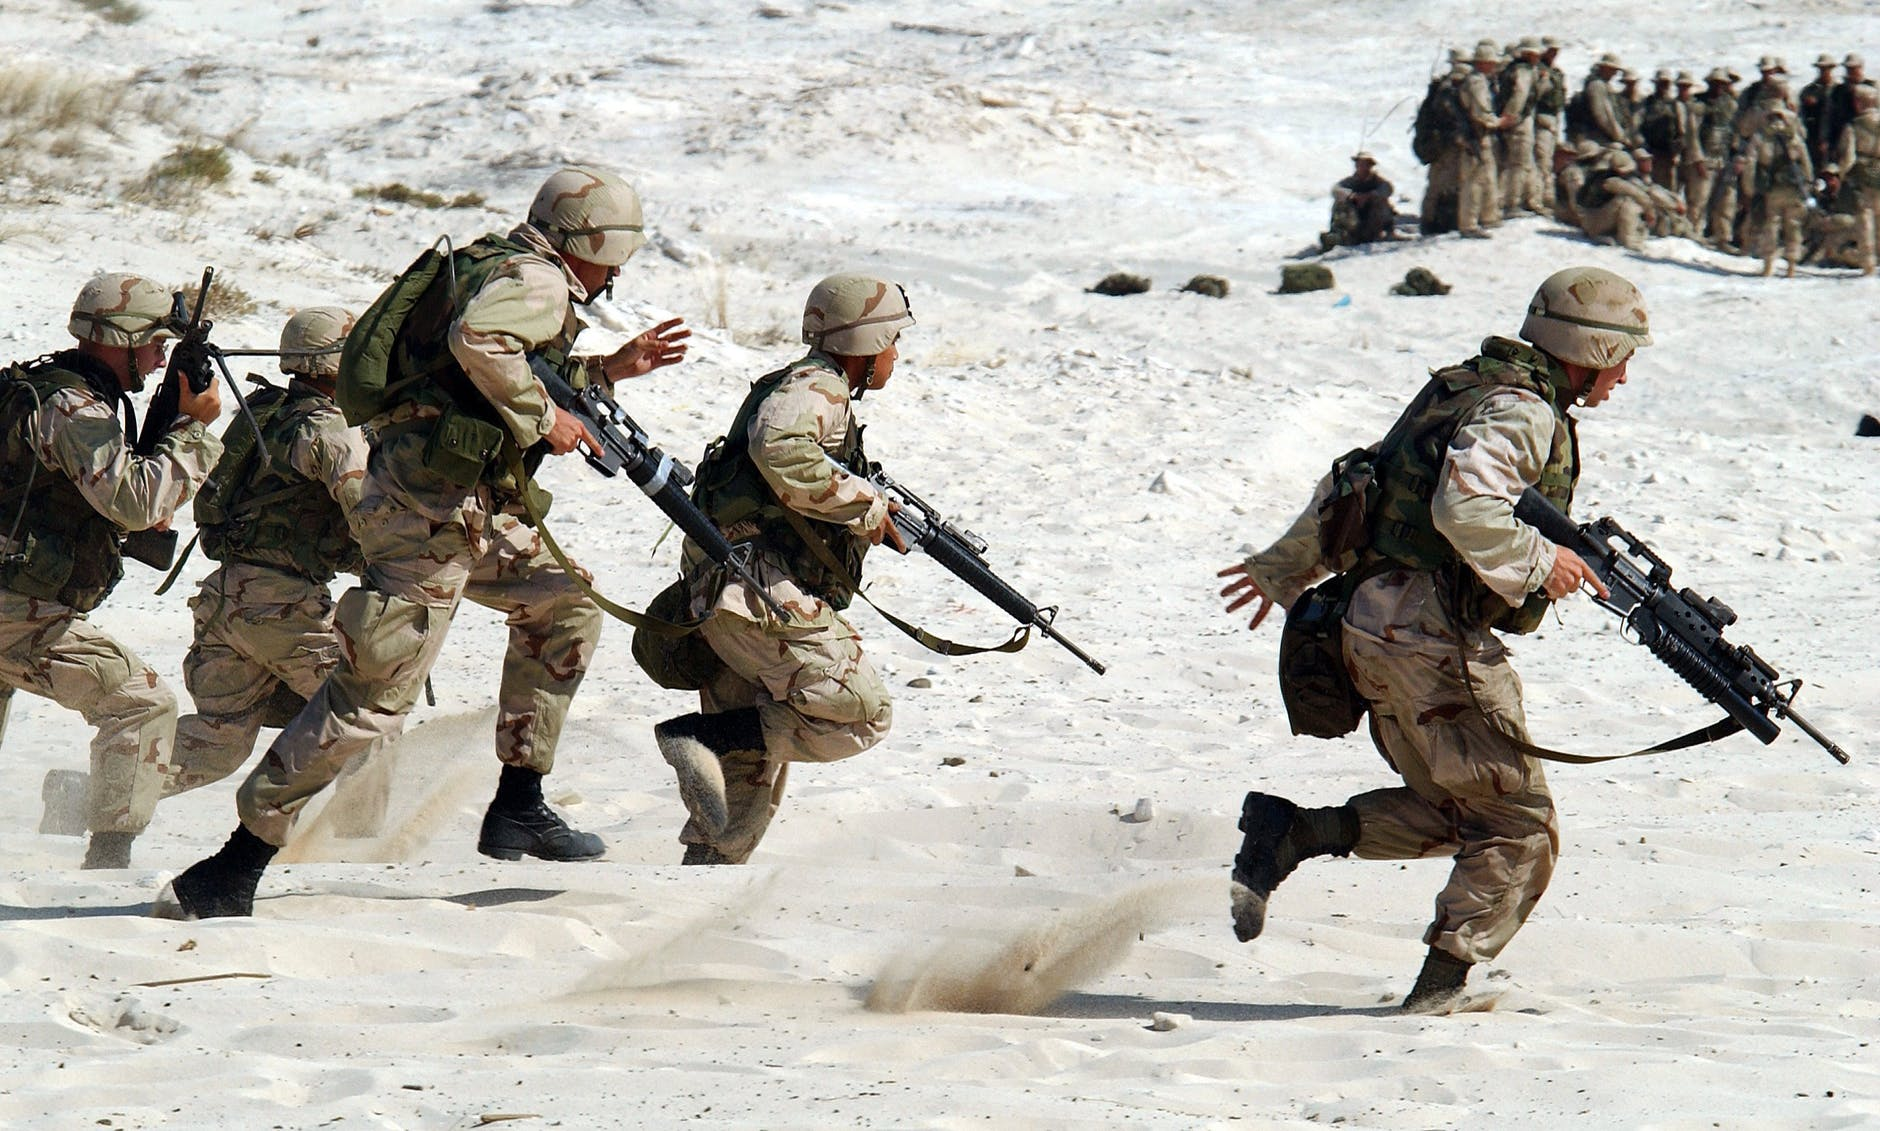 soldiers-military-usa-weapons-87772.jpeg